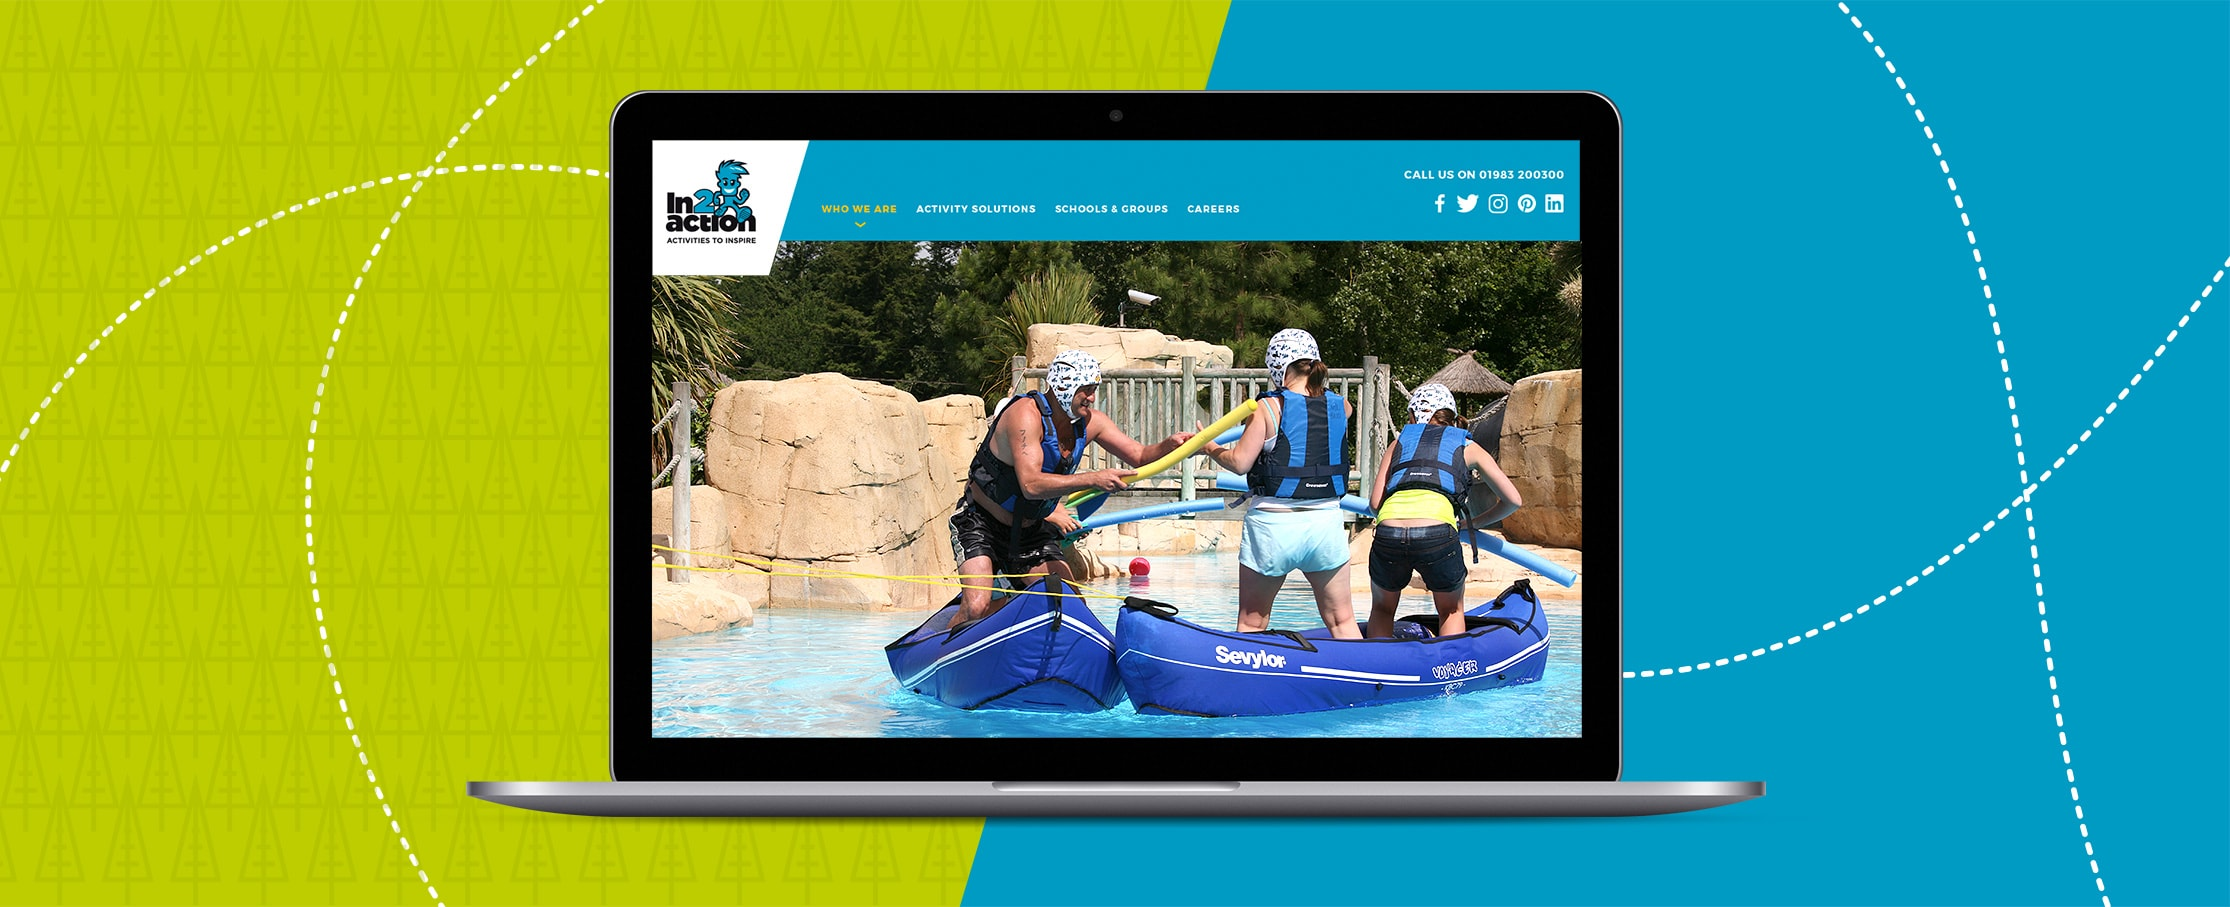 Holiday activity website design in2action